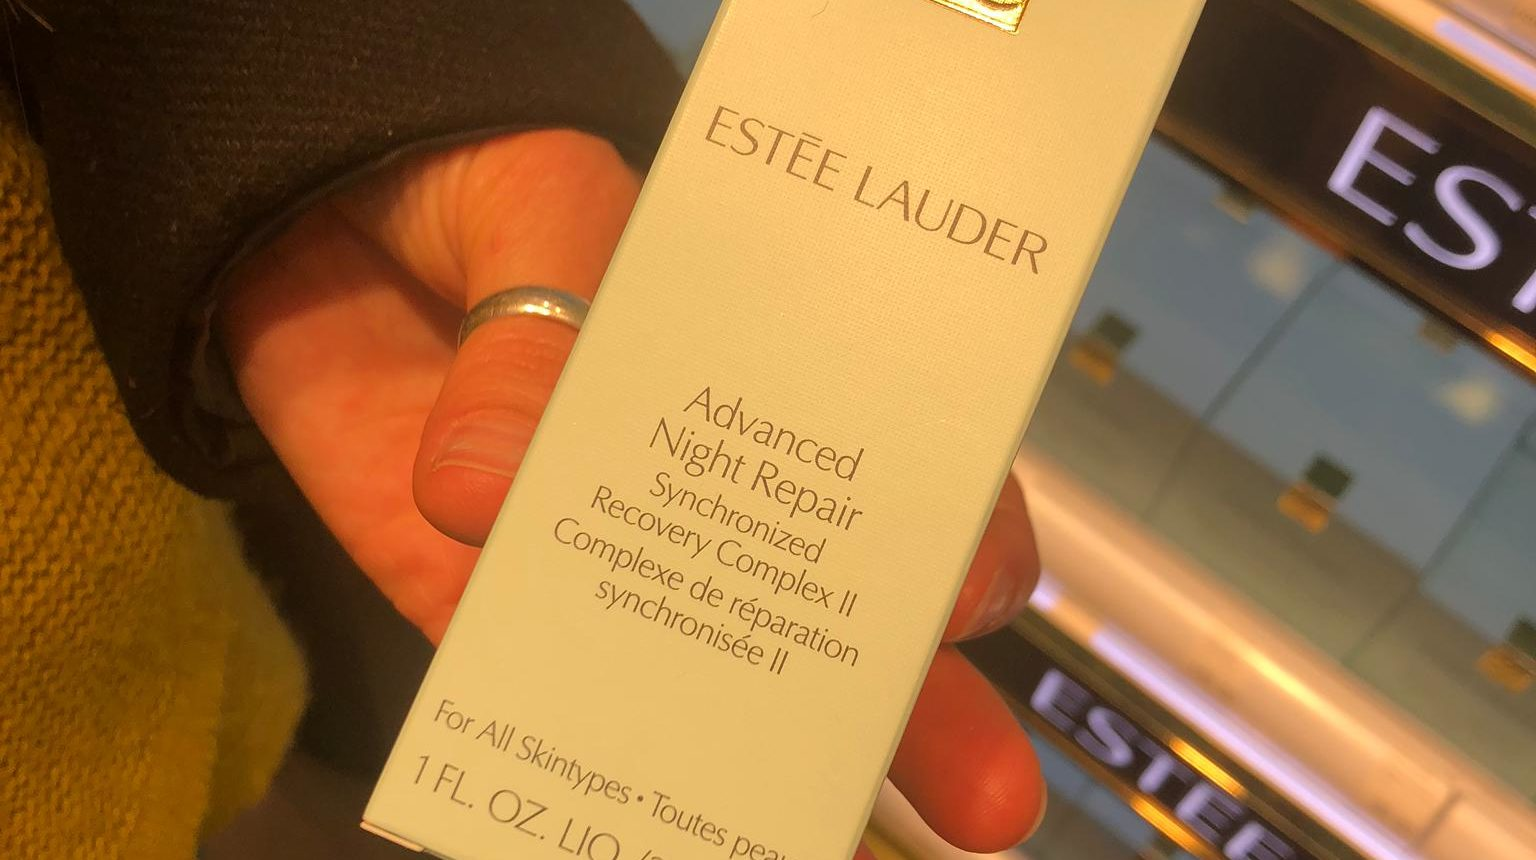 Advanced Night Repair - Estee Lauder